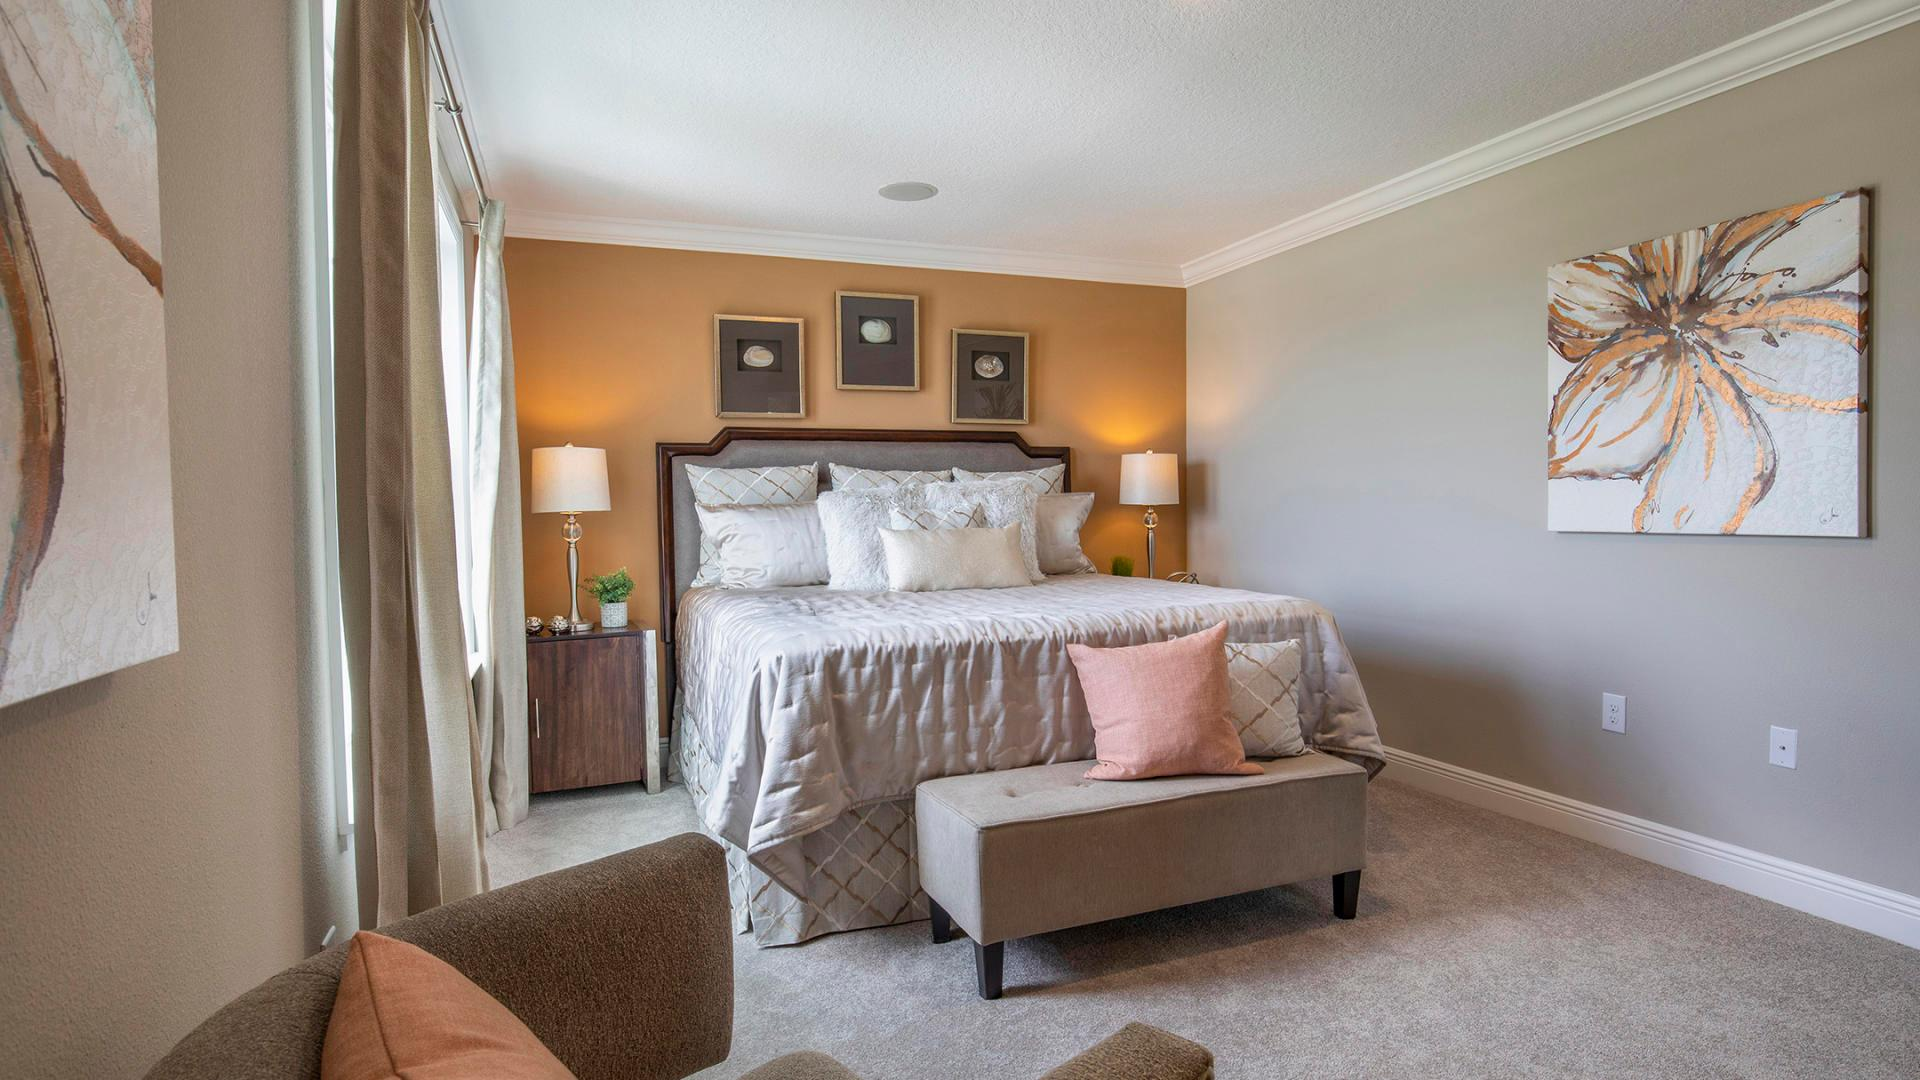 Bedroom featured in the Glendale By Maronda Homes in Daytona Beach, FL